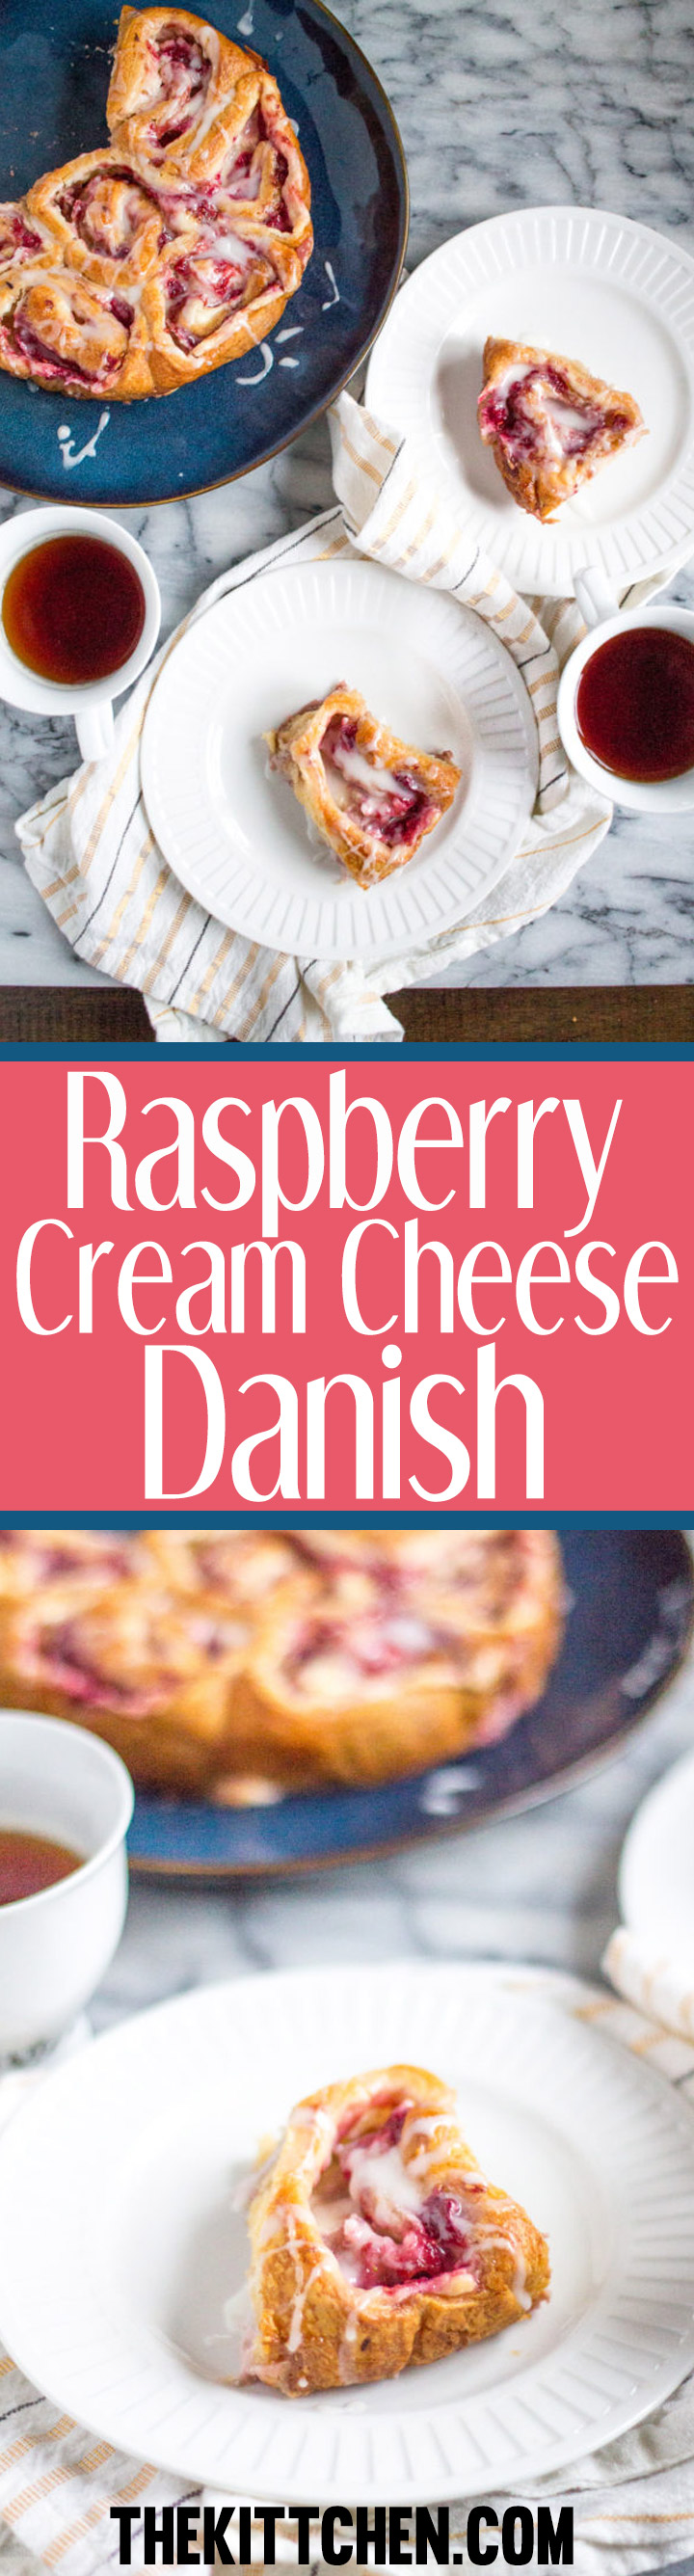 ThisRaspberry Cream Cheese Danish is an easy to prepare breakfast treat that takes just 10 minutes of active preparation time. It is a weekend breakfast your family will love.